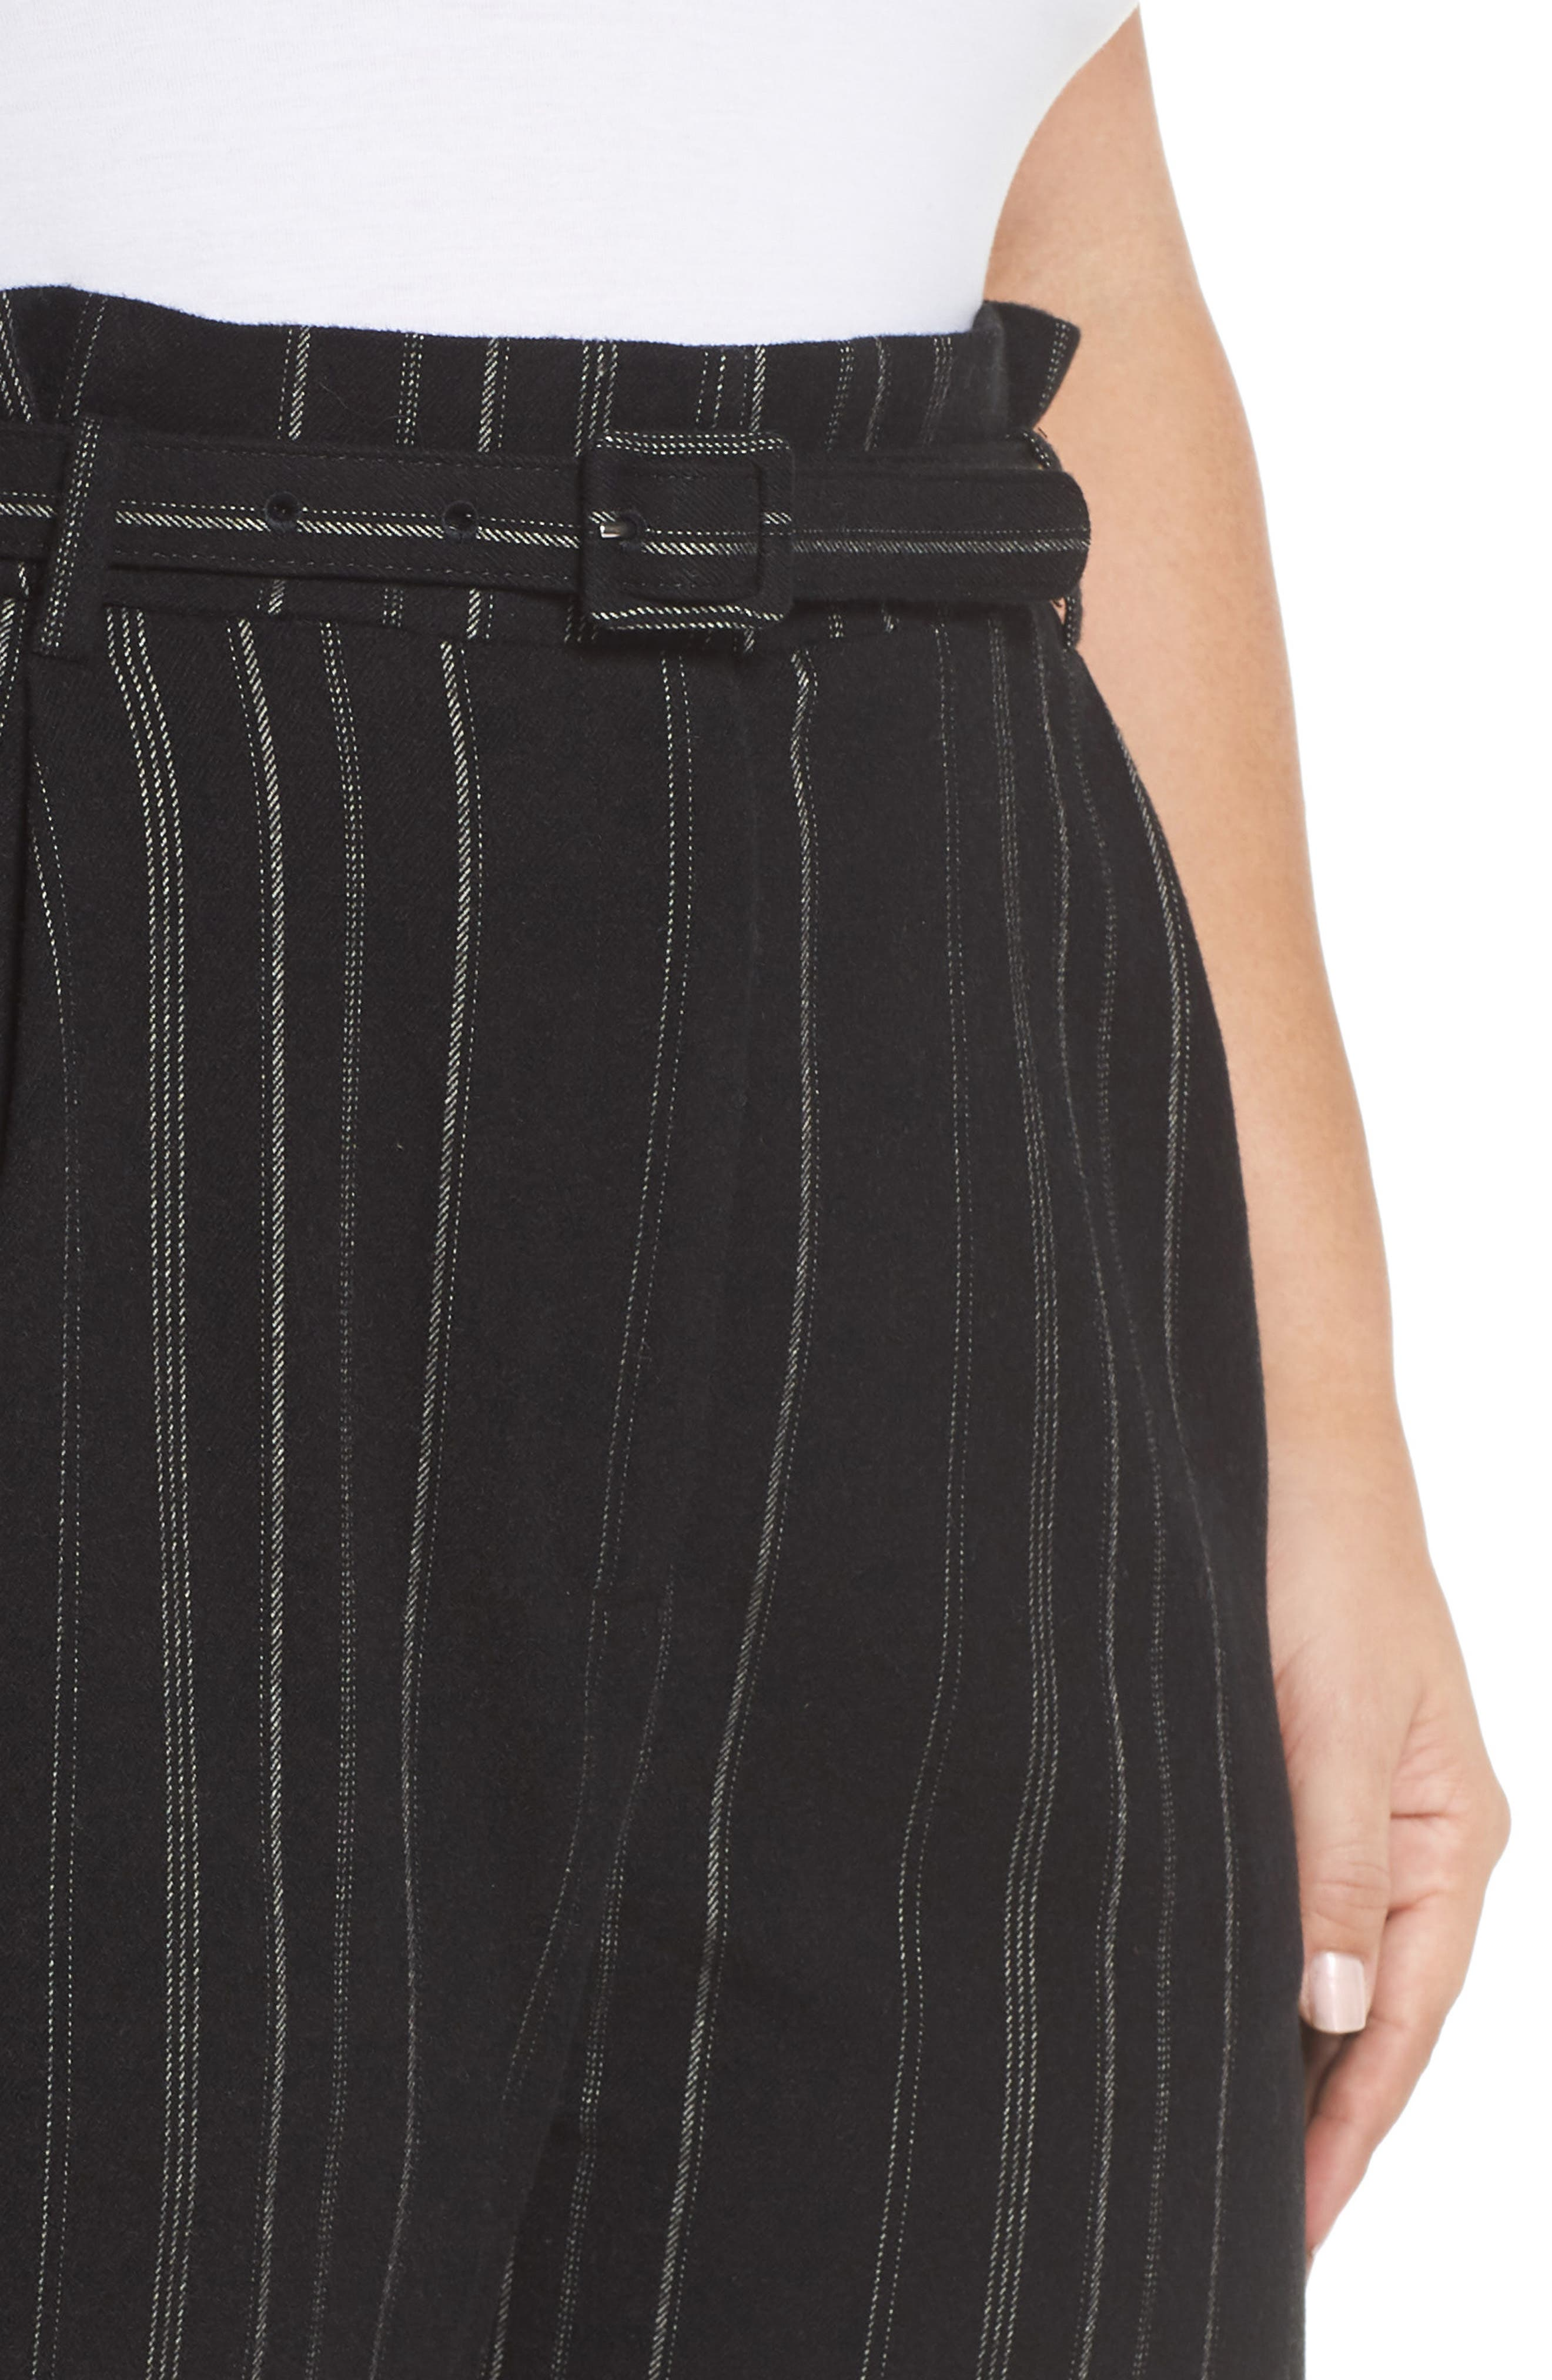 High Rise Belted Paperbag Pants,                             Alternate thumbnail 11, color,                             BLACK MIXED STRIPE